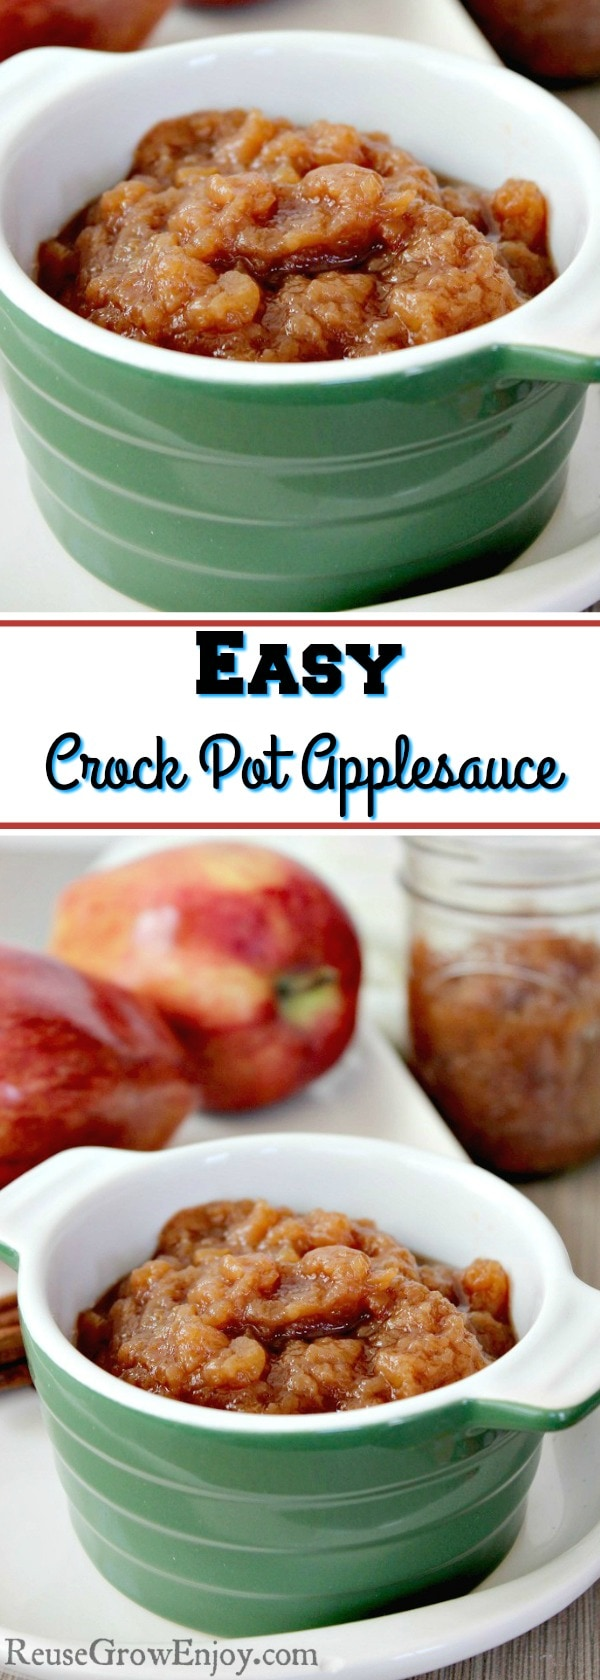 Homemade Crock Pot Applesauce is one of those recipes that is a super easy applesauce recipe. After you make it, you will never go back to store bought!